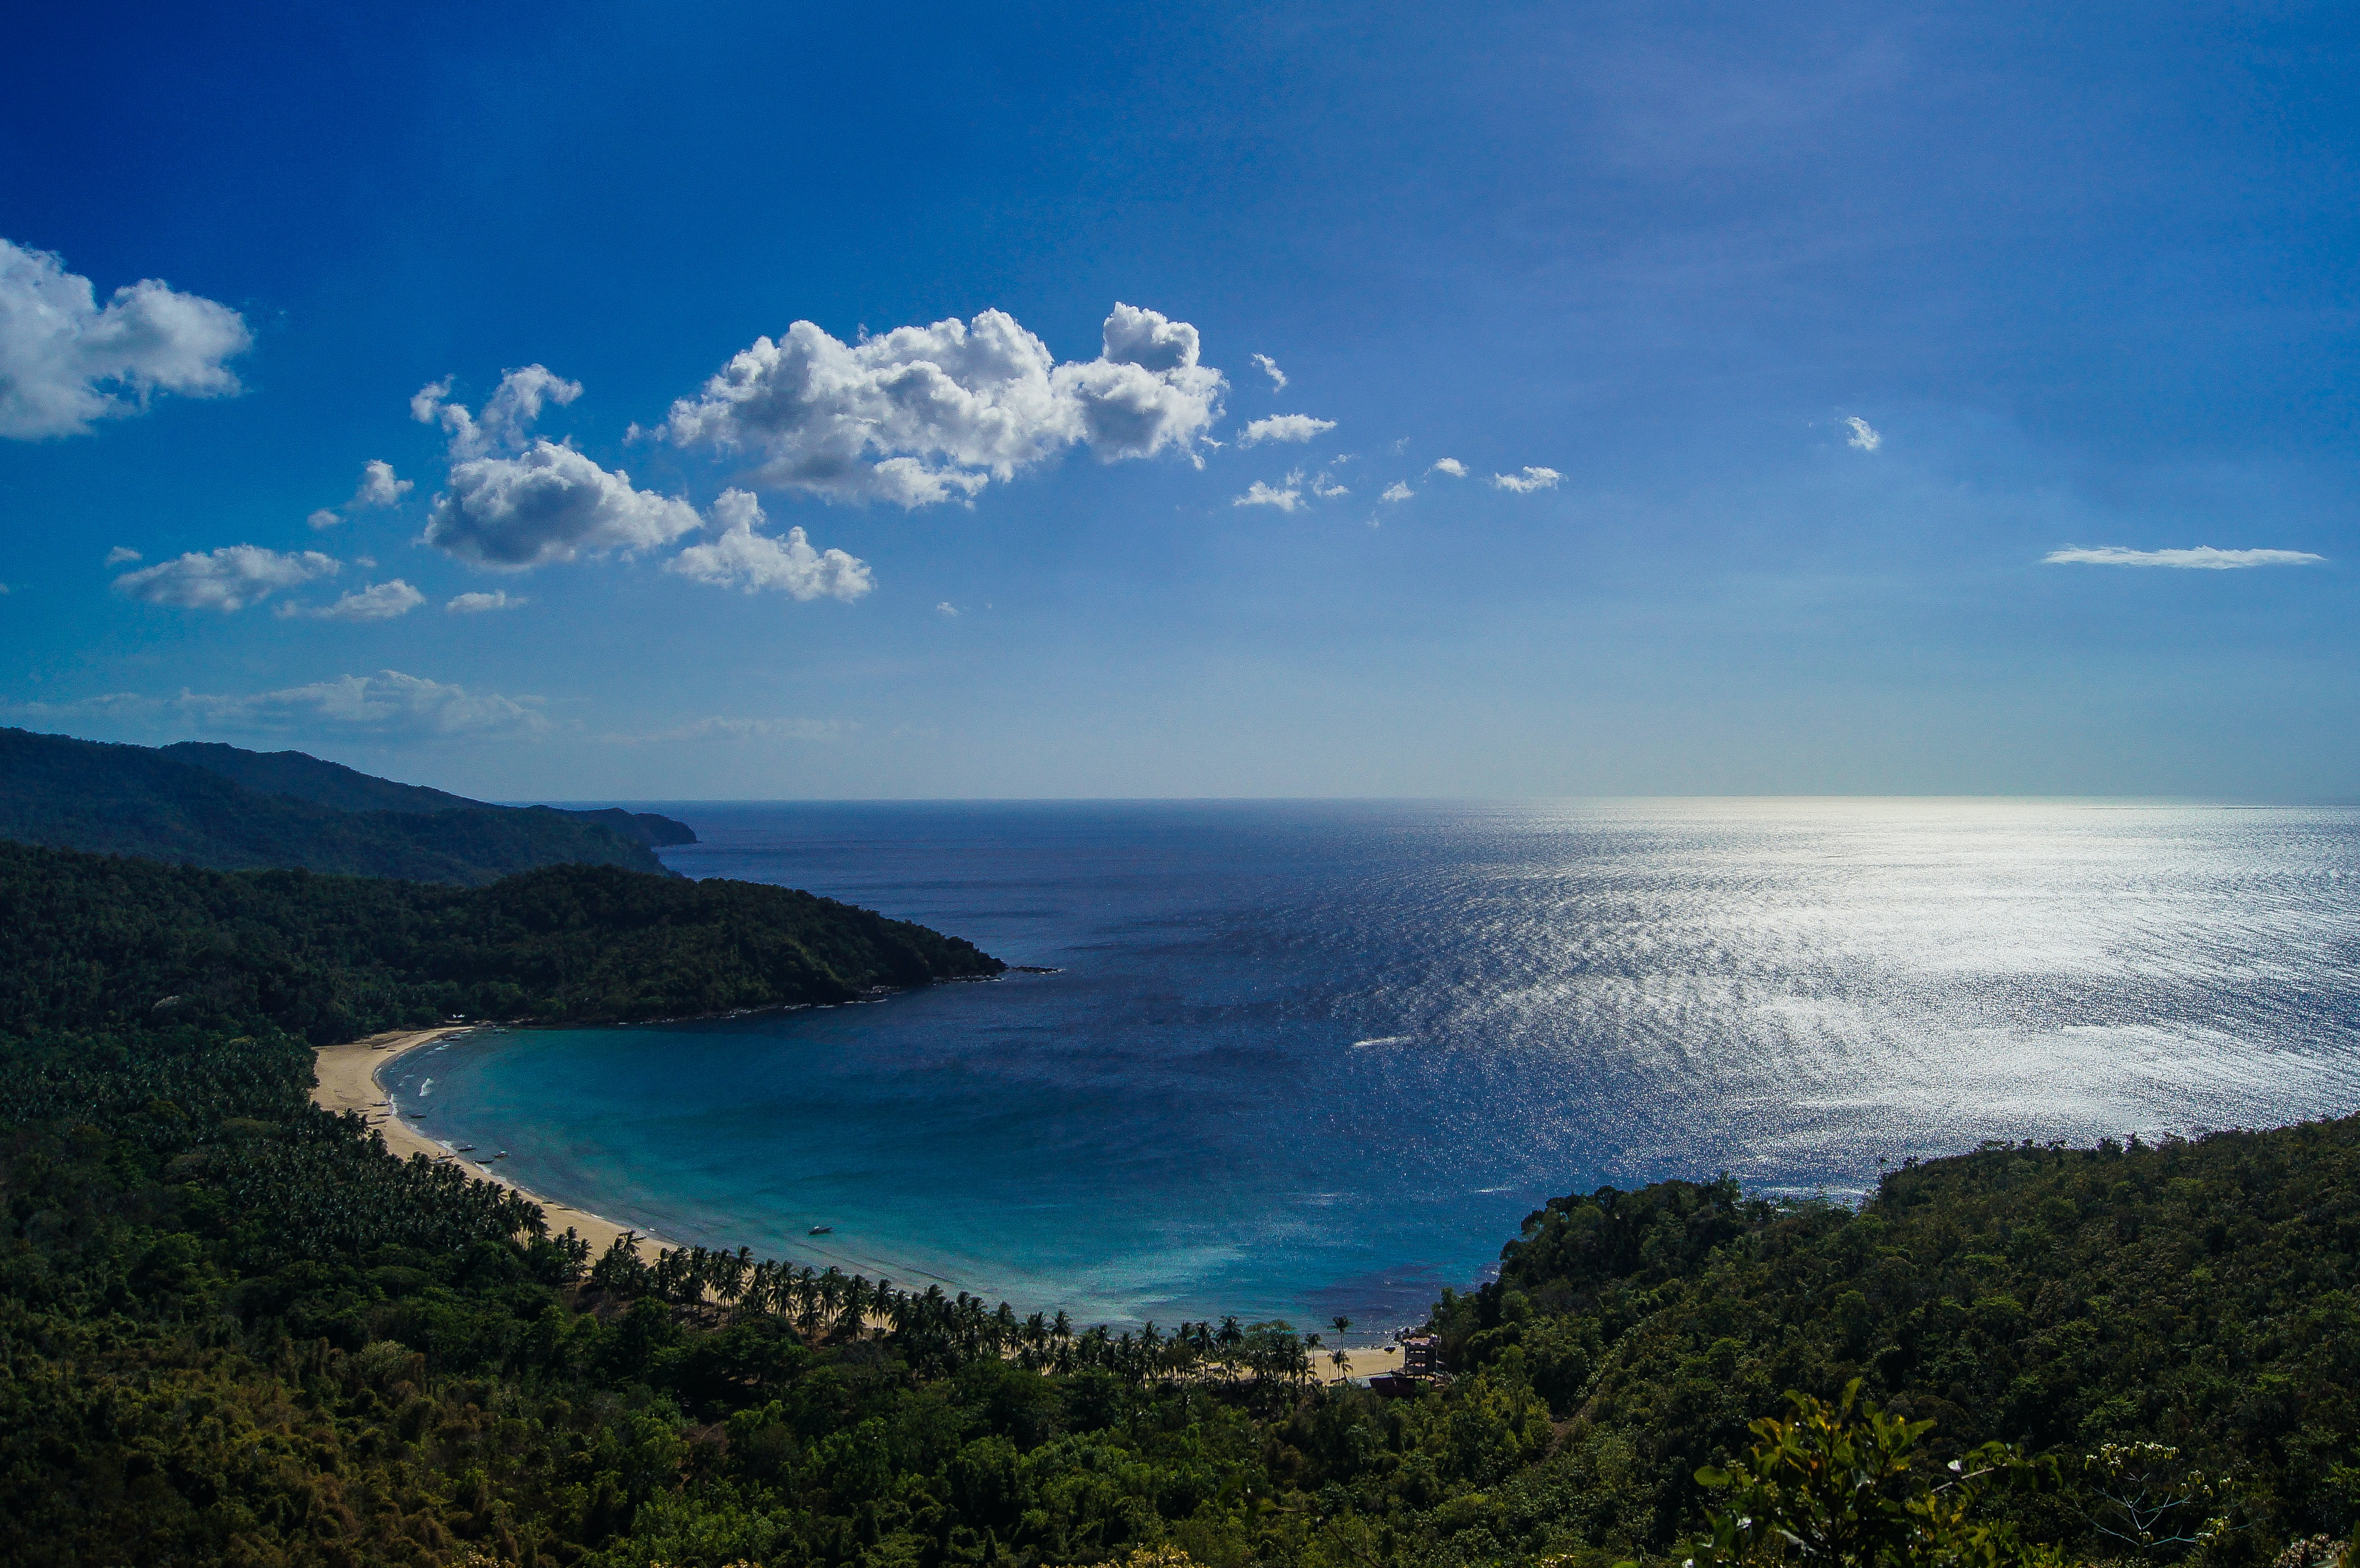 Impressive horizon featuring blue ocean, shore and clouds in the sky at a beach location